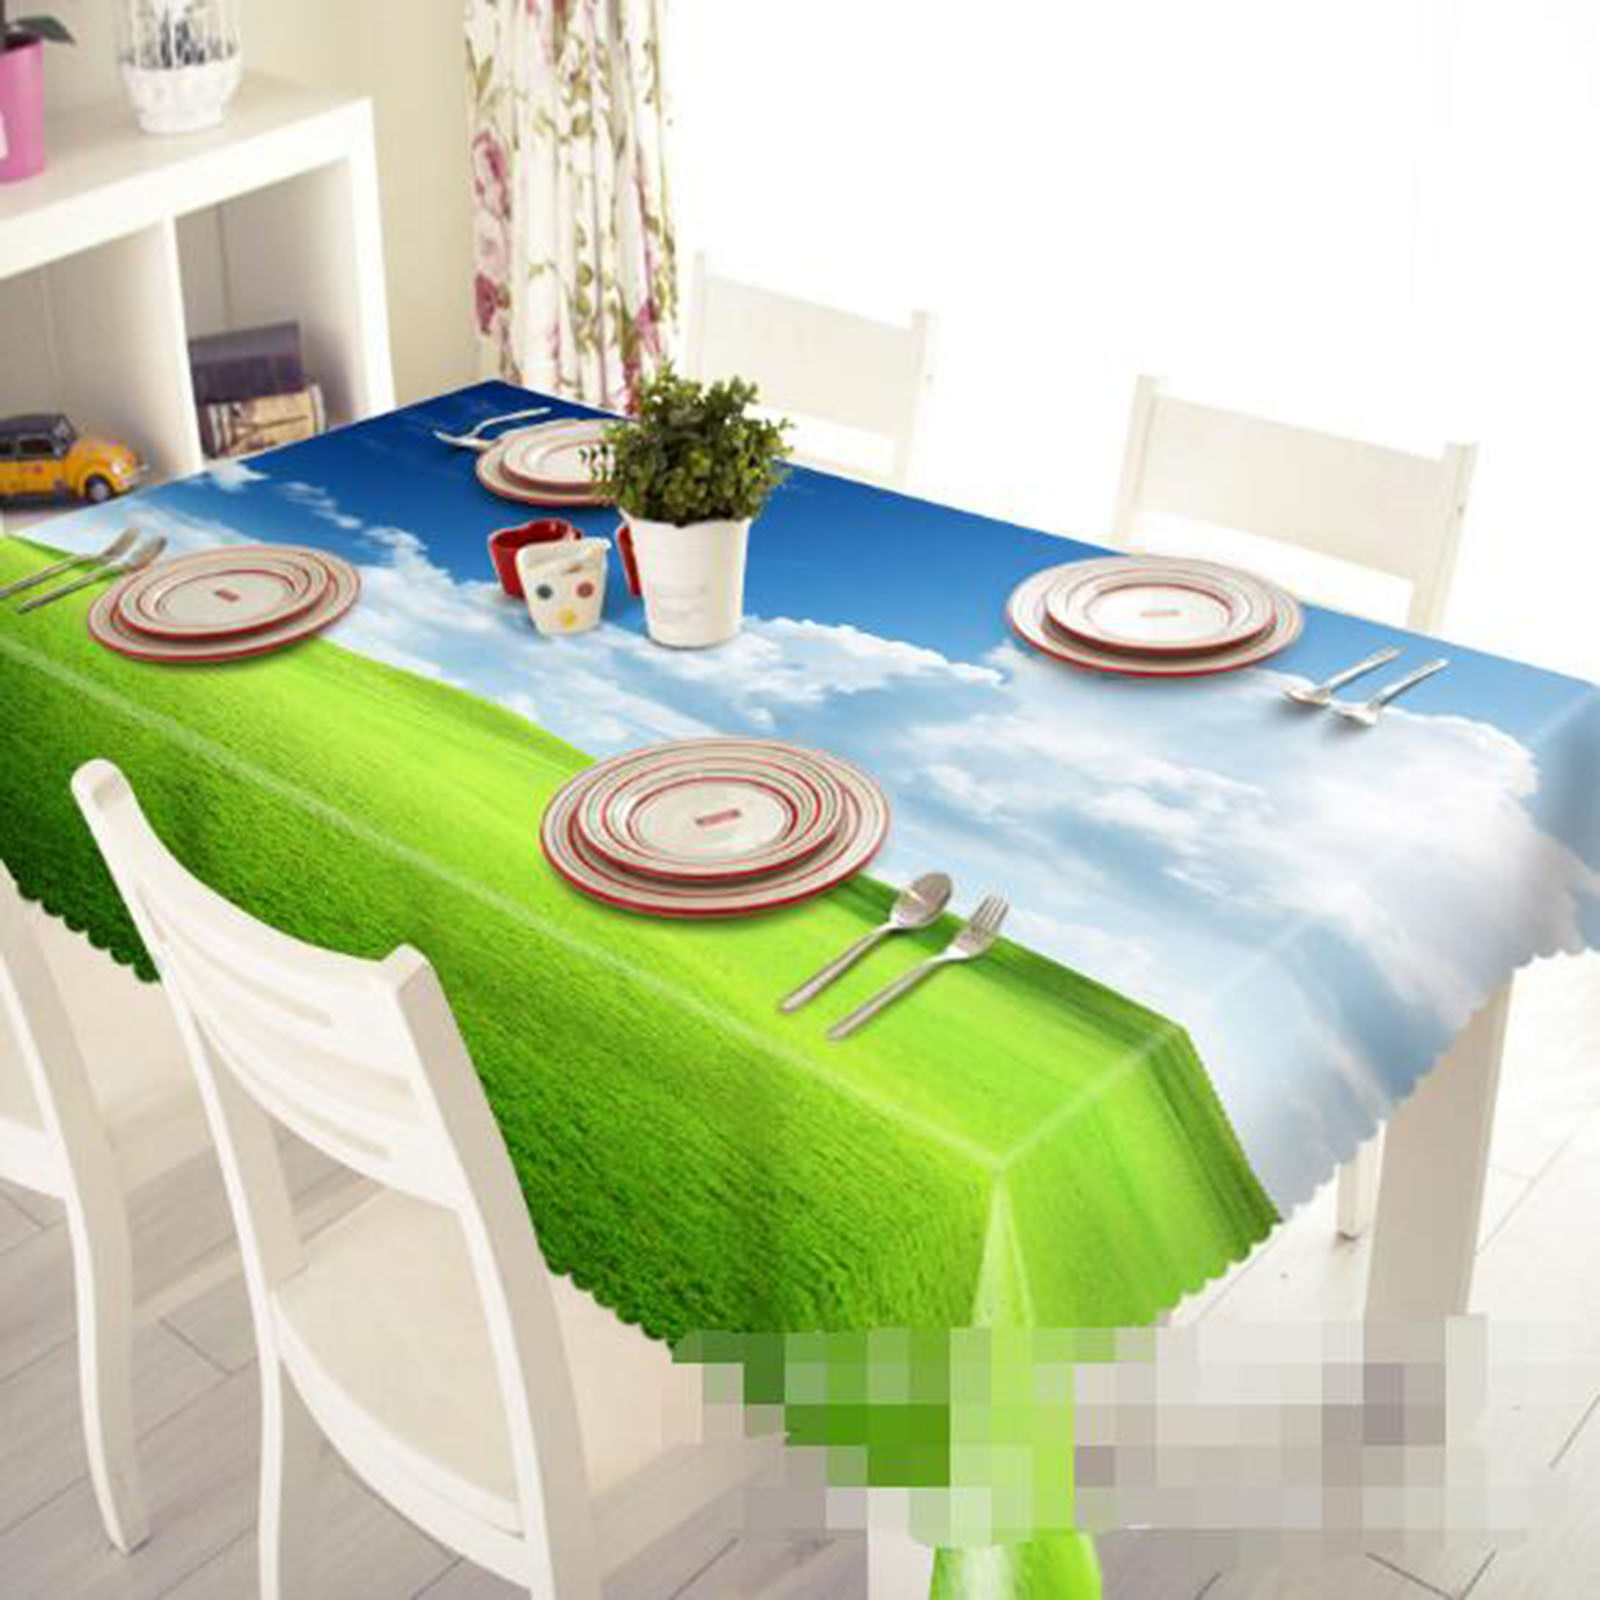 3D Meadow 404 Tablecloth Table Cover Cloth Birthday Party AJ WALLPAPER UK Lemon